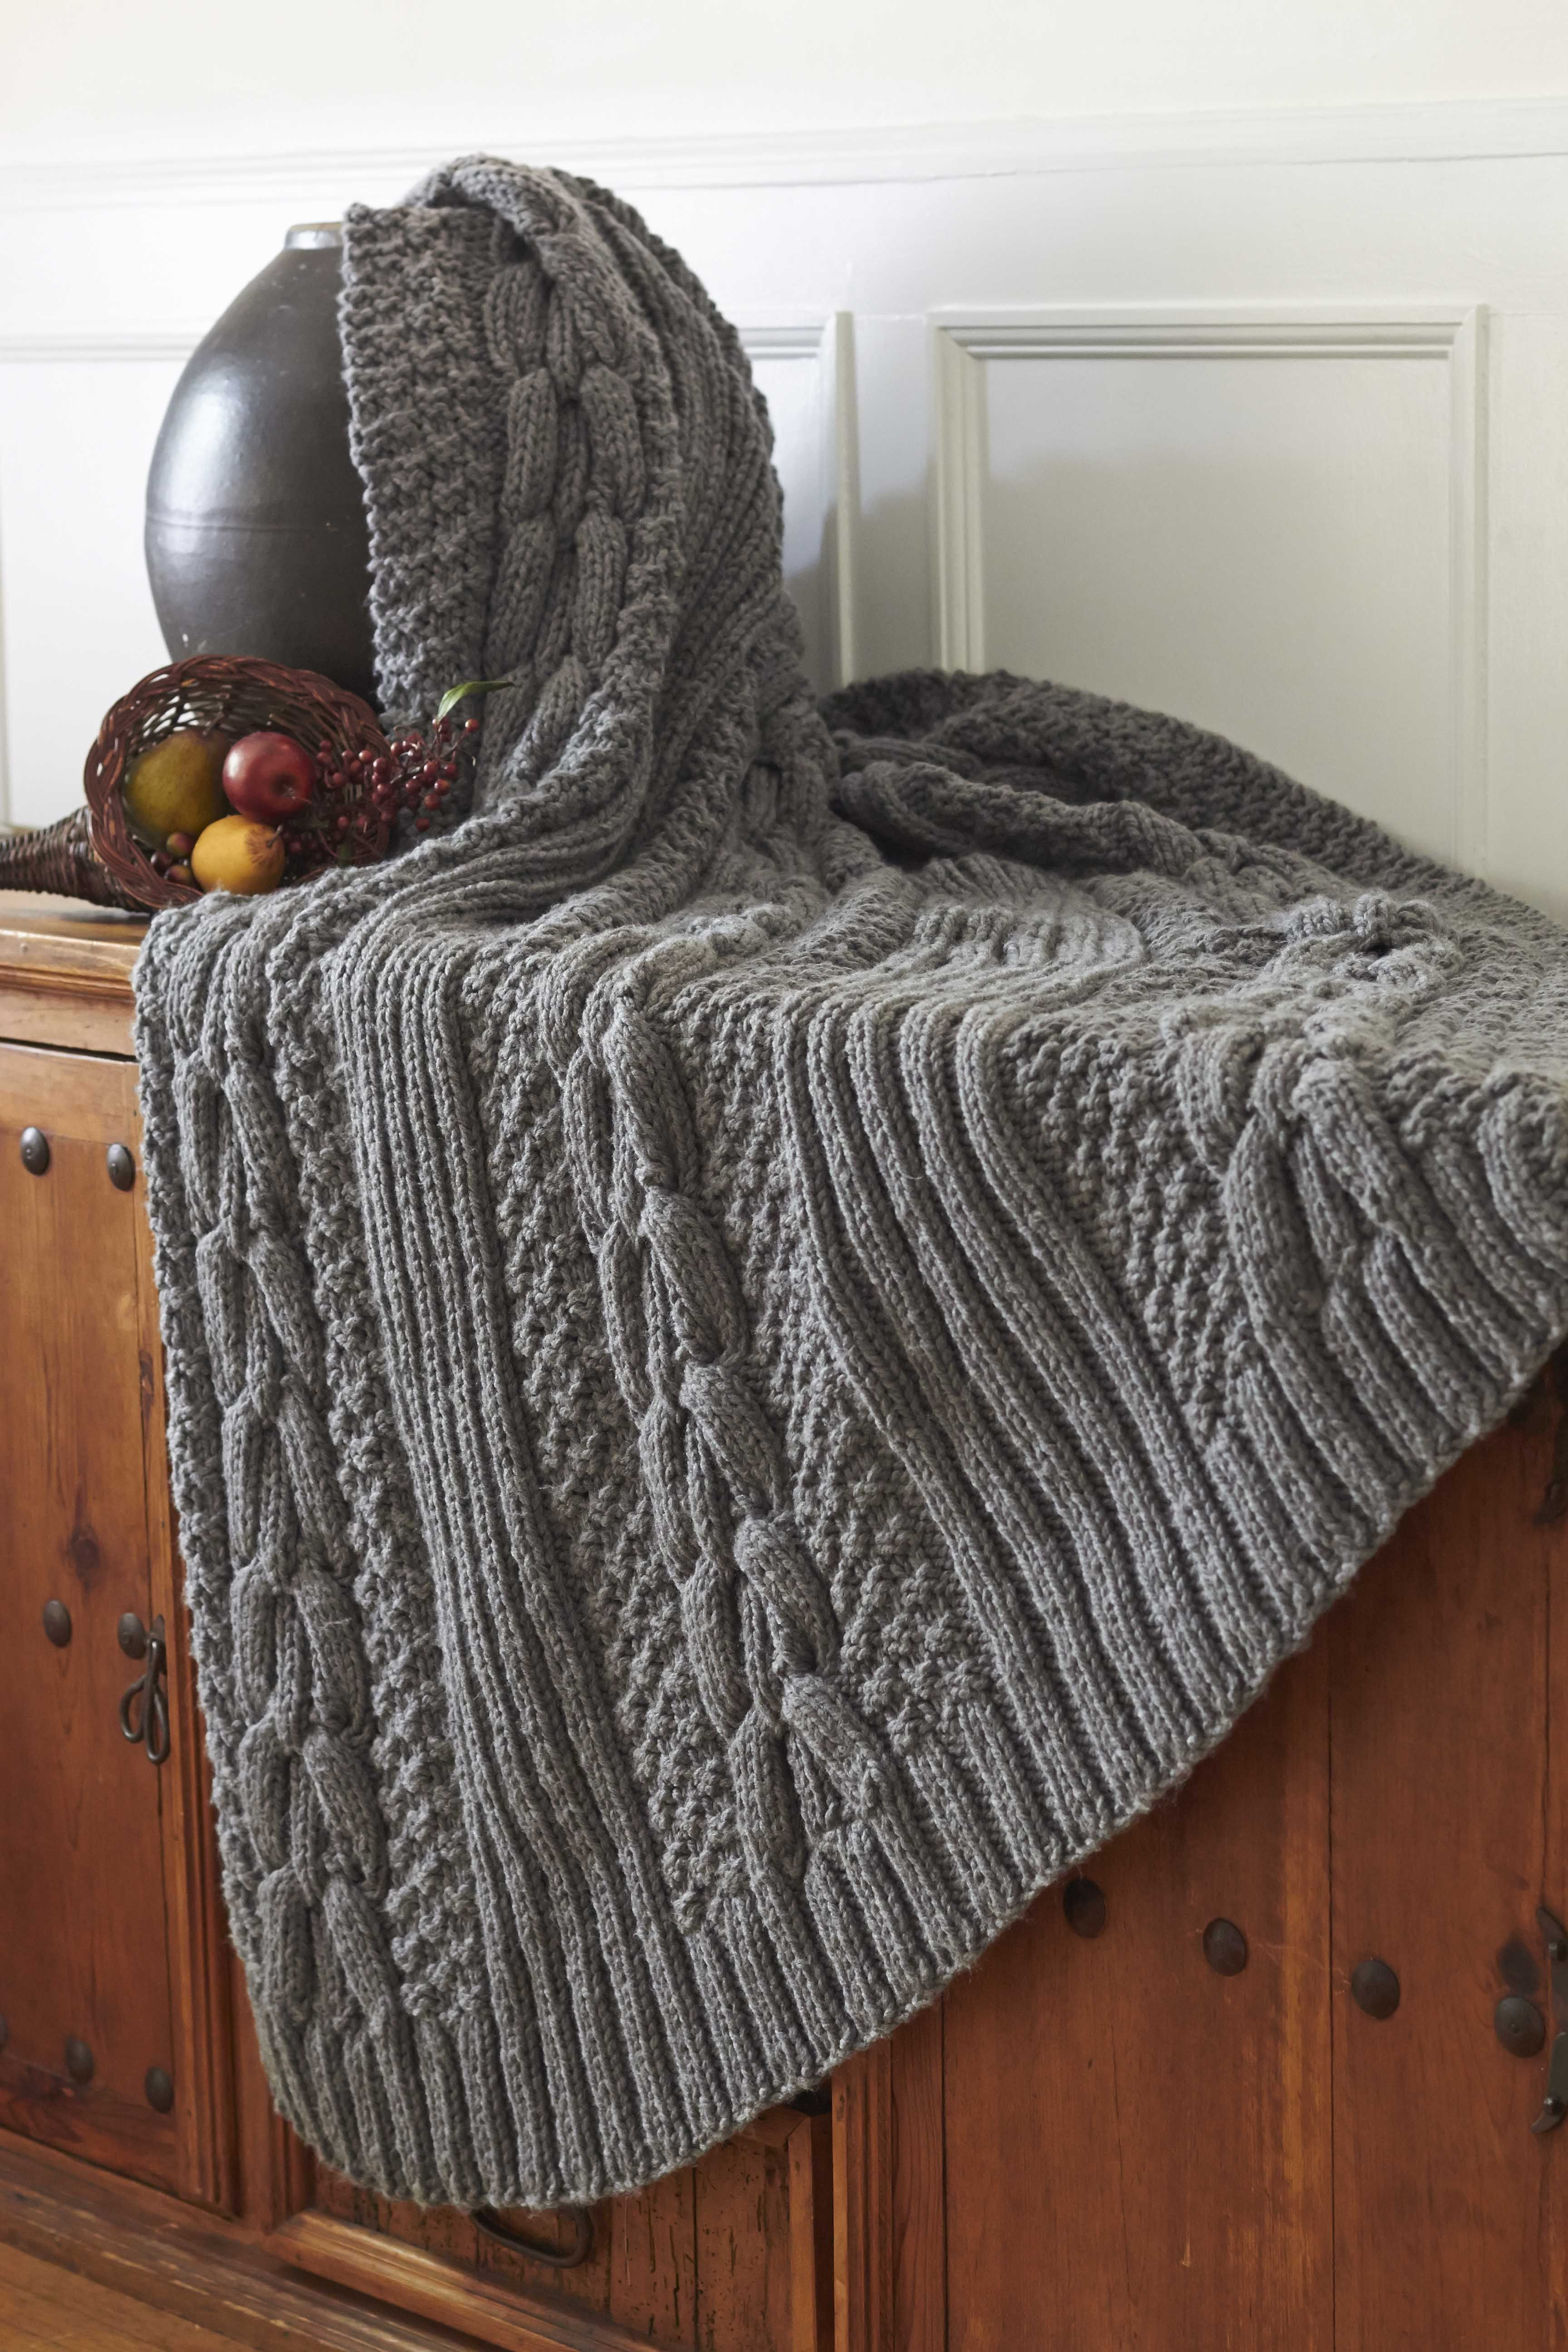 Knitted Throw Beautiful Bernat Harvest Home Horseshoe Cable Blanket Harvesthome Of Wonderful 48 Images Knitted Throw